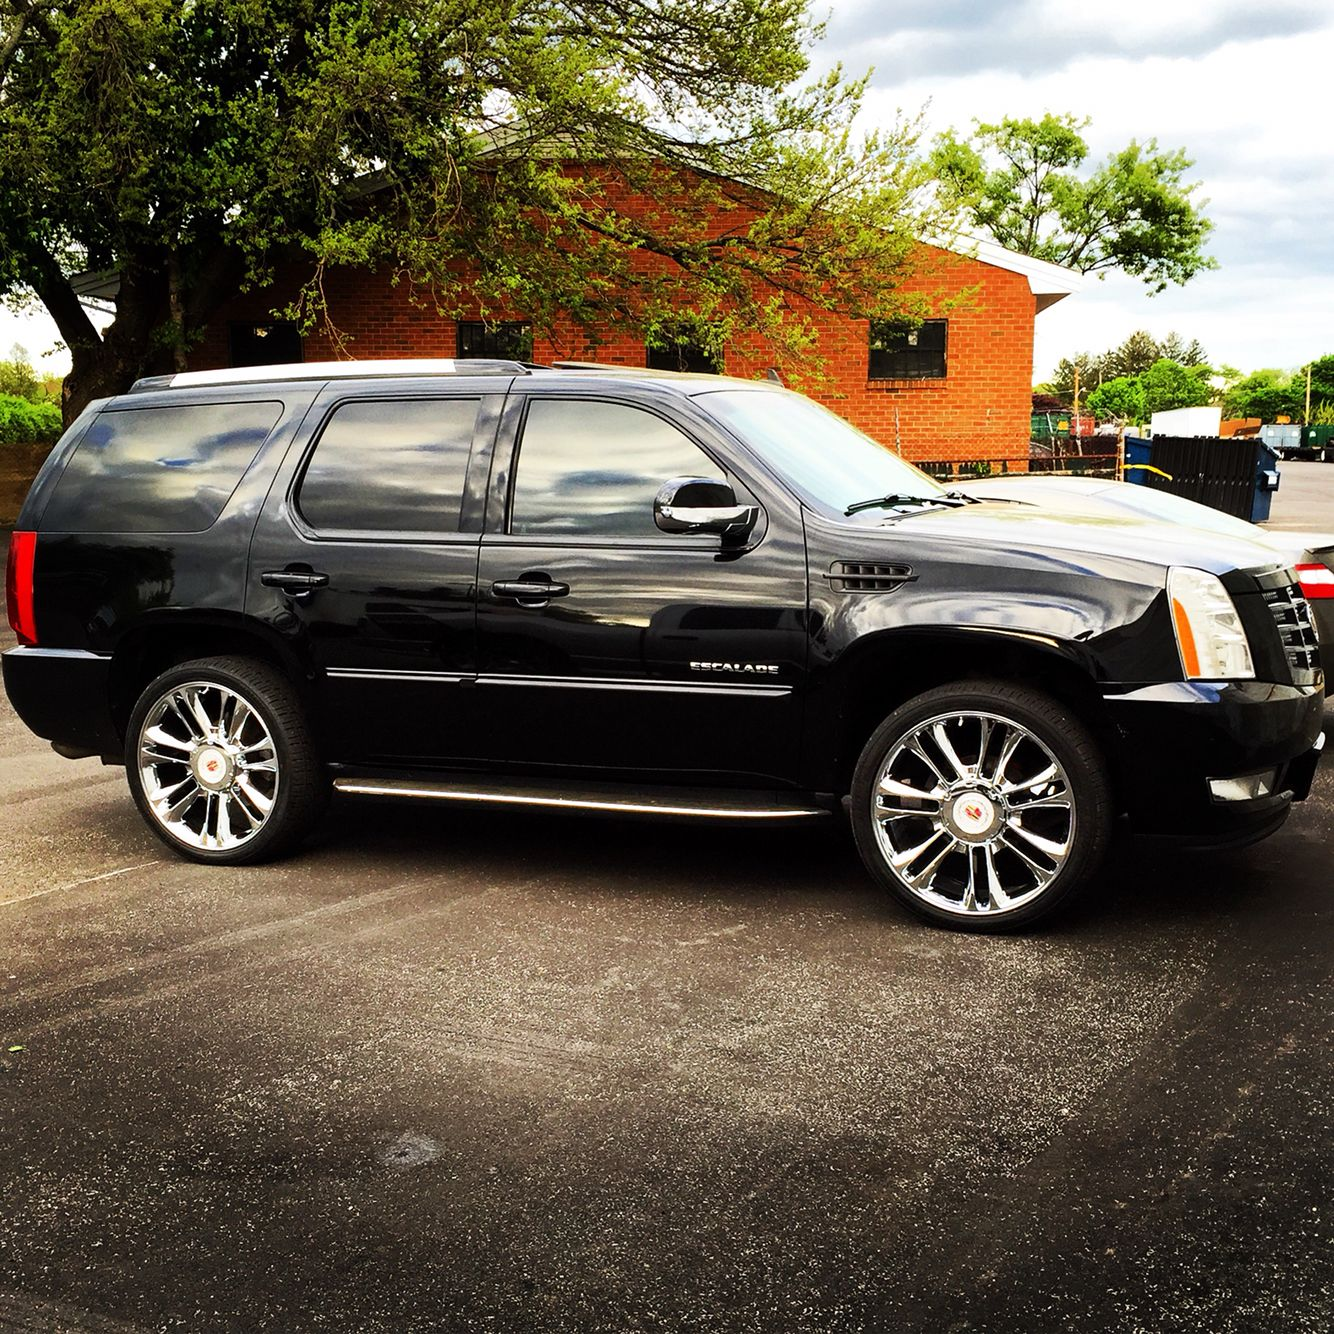 24 platinum replicas in chrome on a cadillac escalade